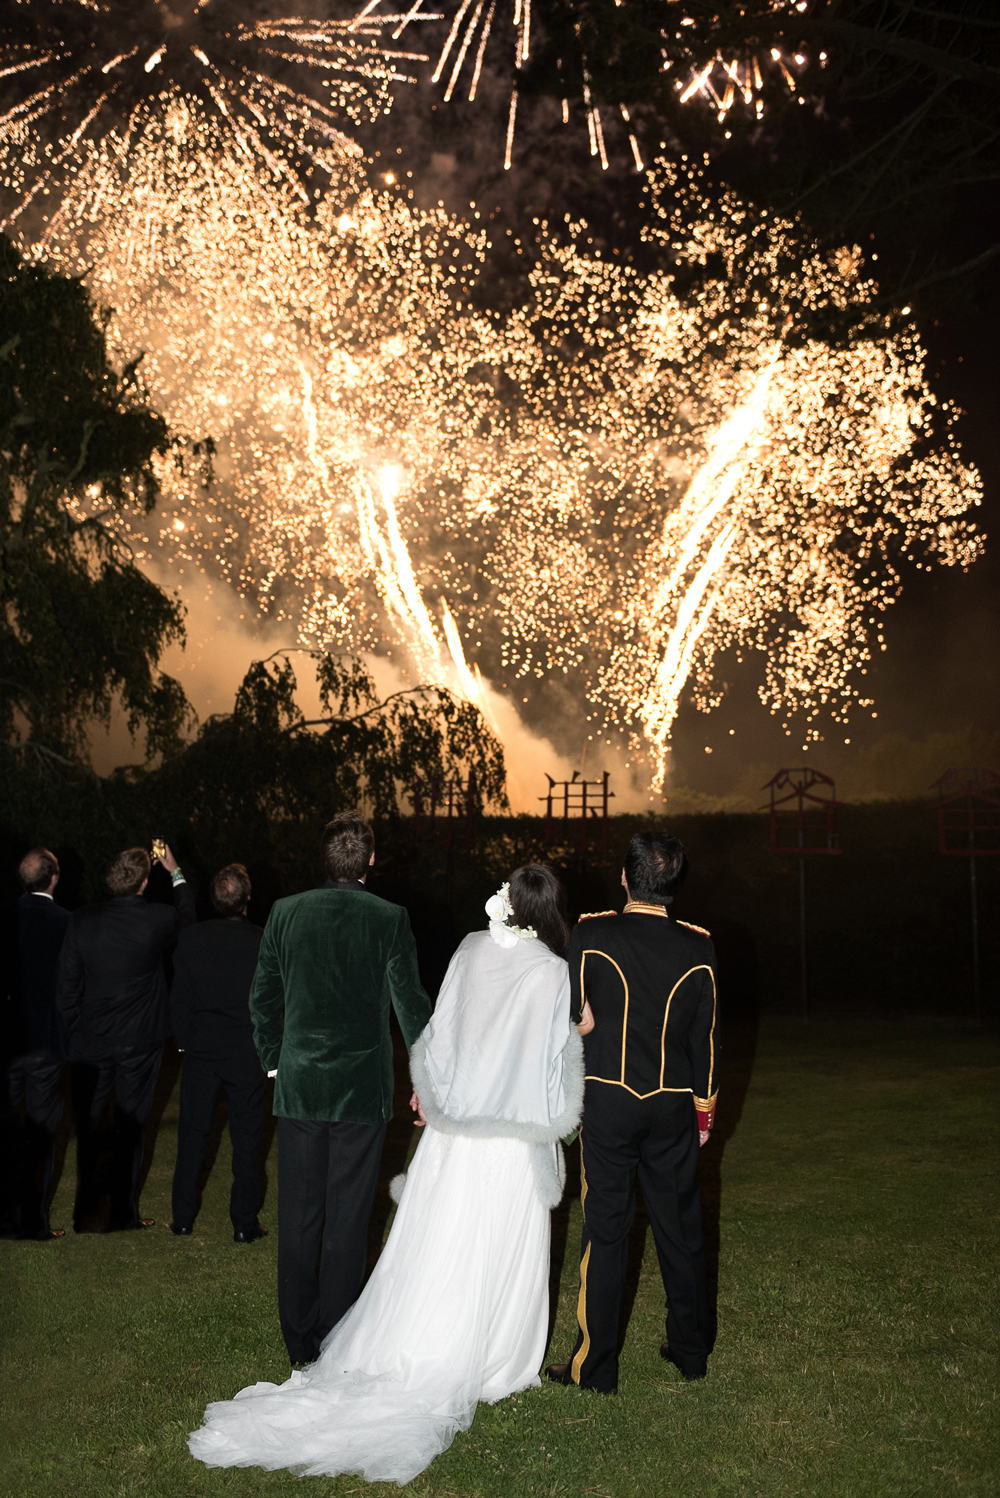 peony matthew england wedding guests viewing fireworks